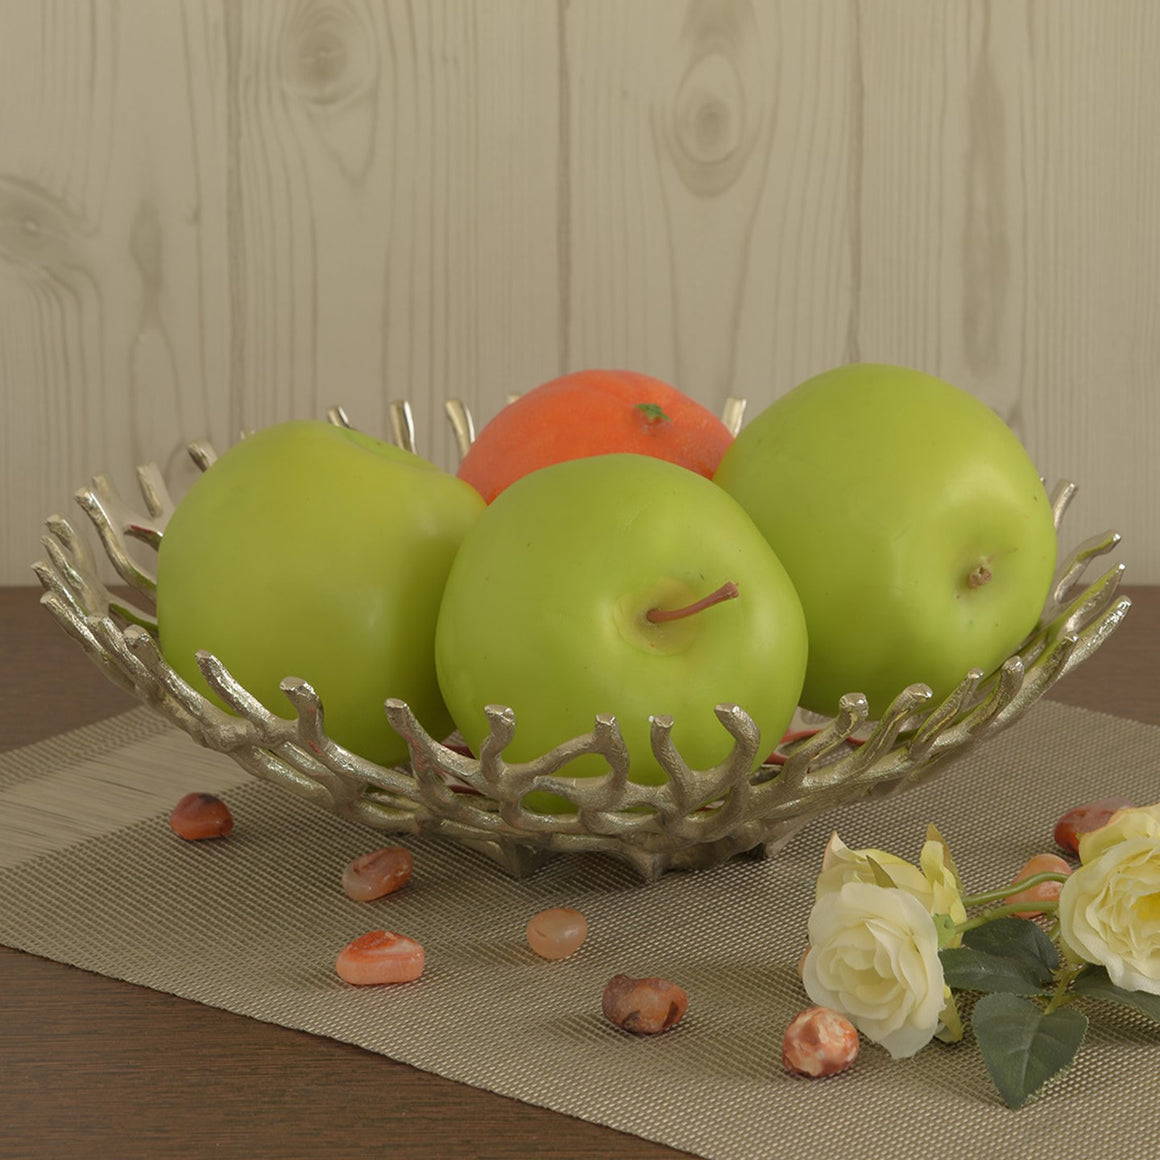 Mother's Day Special Collection - Fruit Basket, Bowl, Fennel and Fork